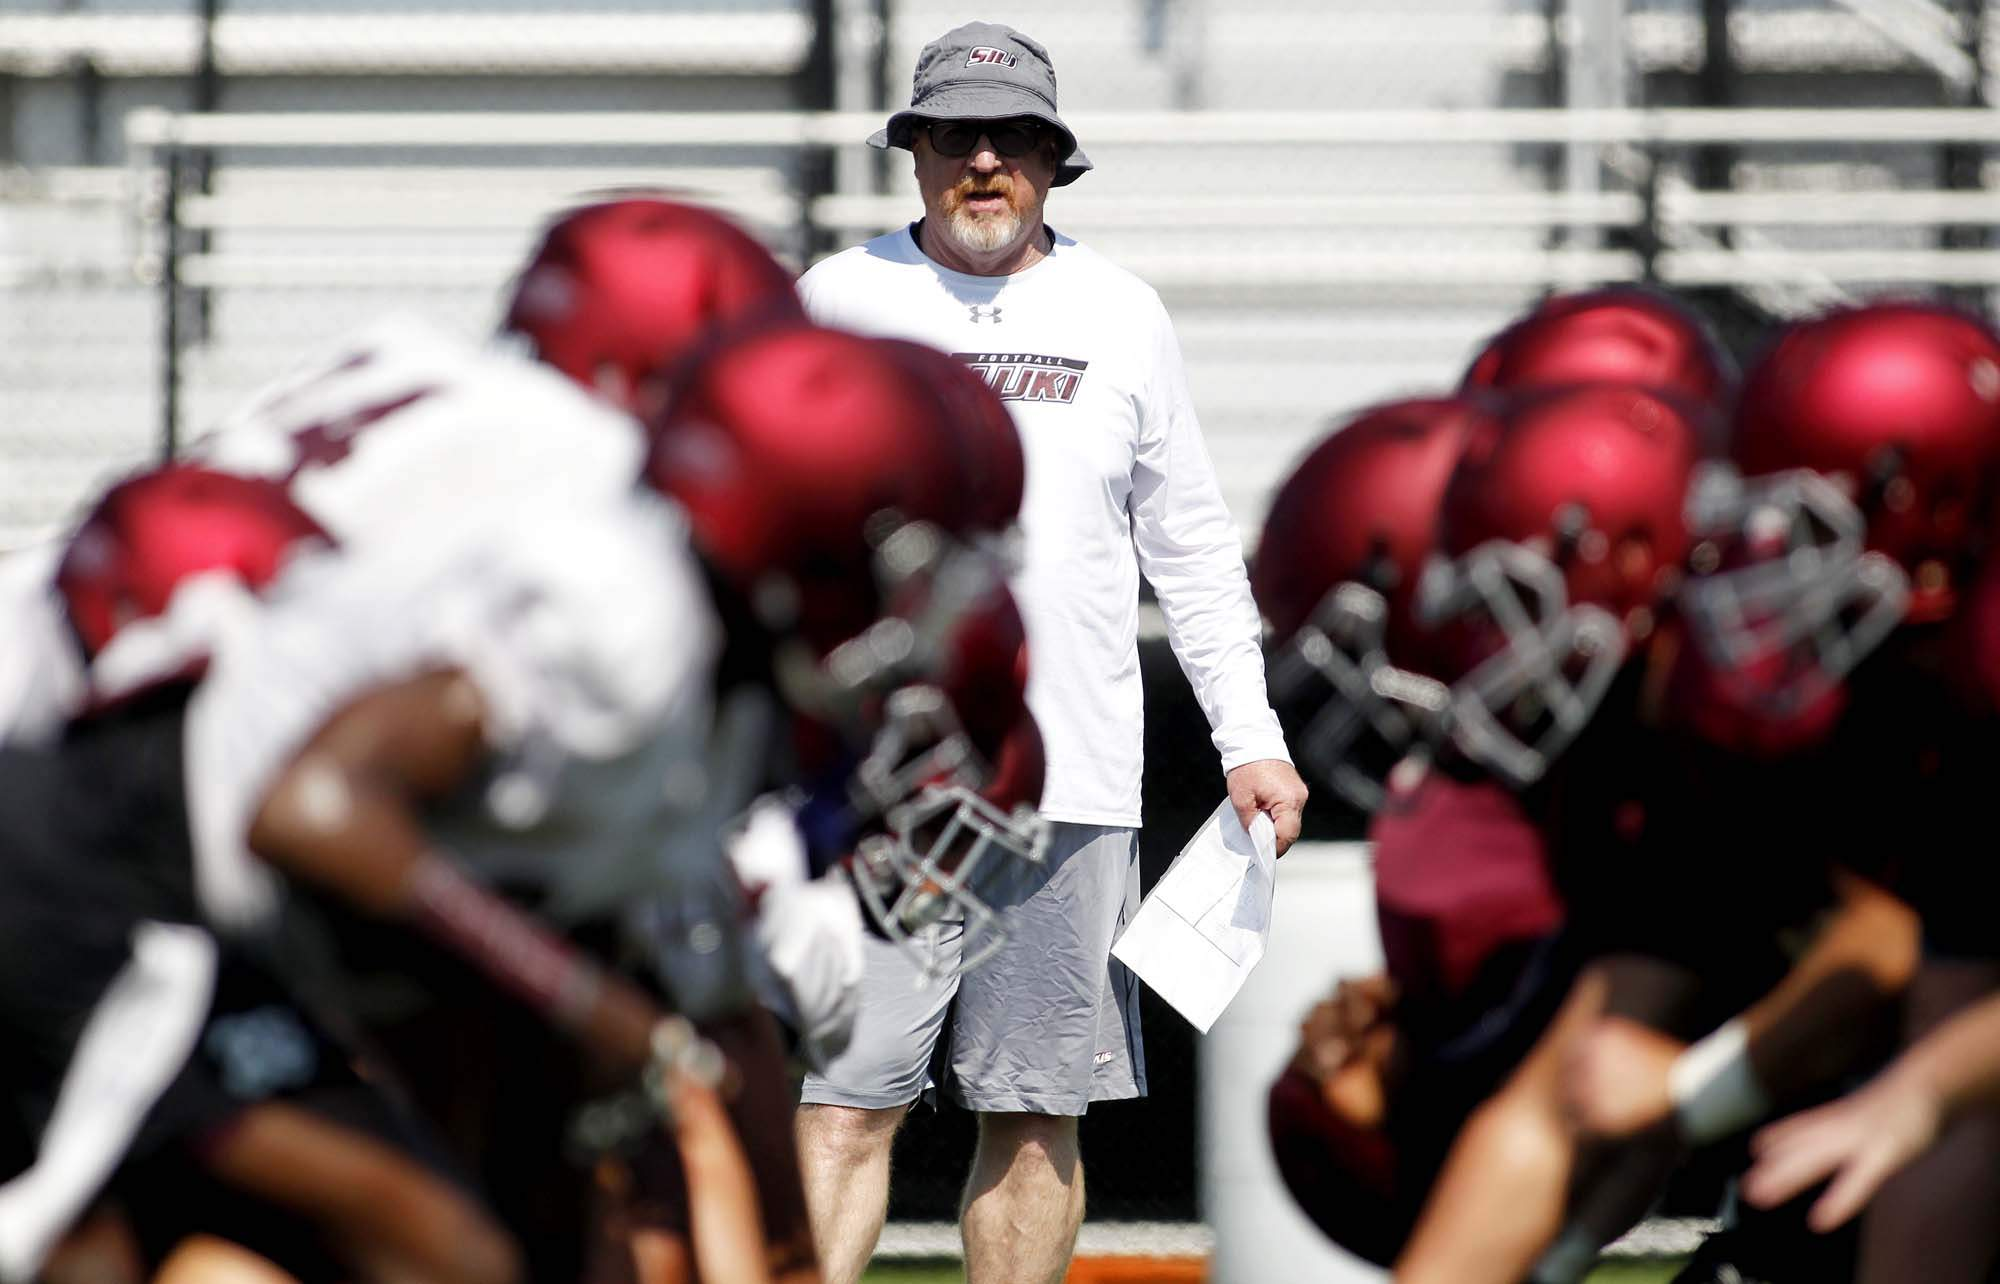 Southern Illinois University defensive head coach Kraig Paulson watches over a drill during the Salukis' practice Friday in Carbondale. Paulson is in his third year as defensive head coach and each of the past two seasons, SIU's defense has been 3.5 points better. This year's de- fense features two players that were on the Missouri Valley Footall Preason All-Conference Team.Defense